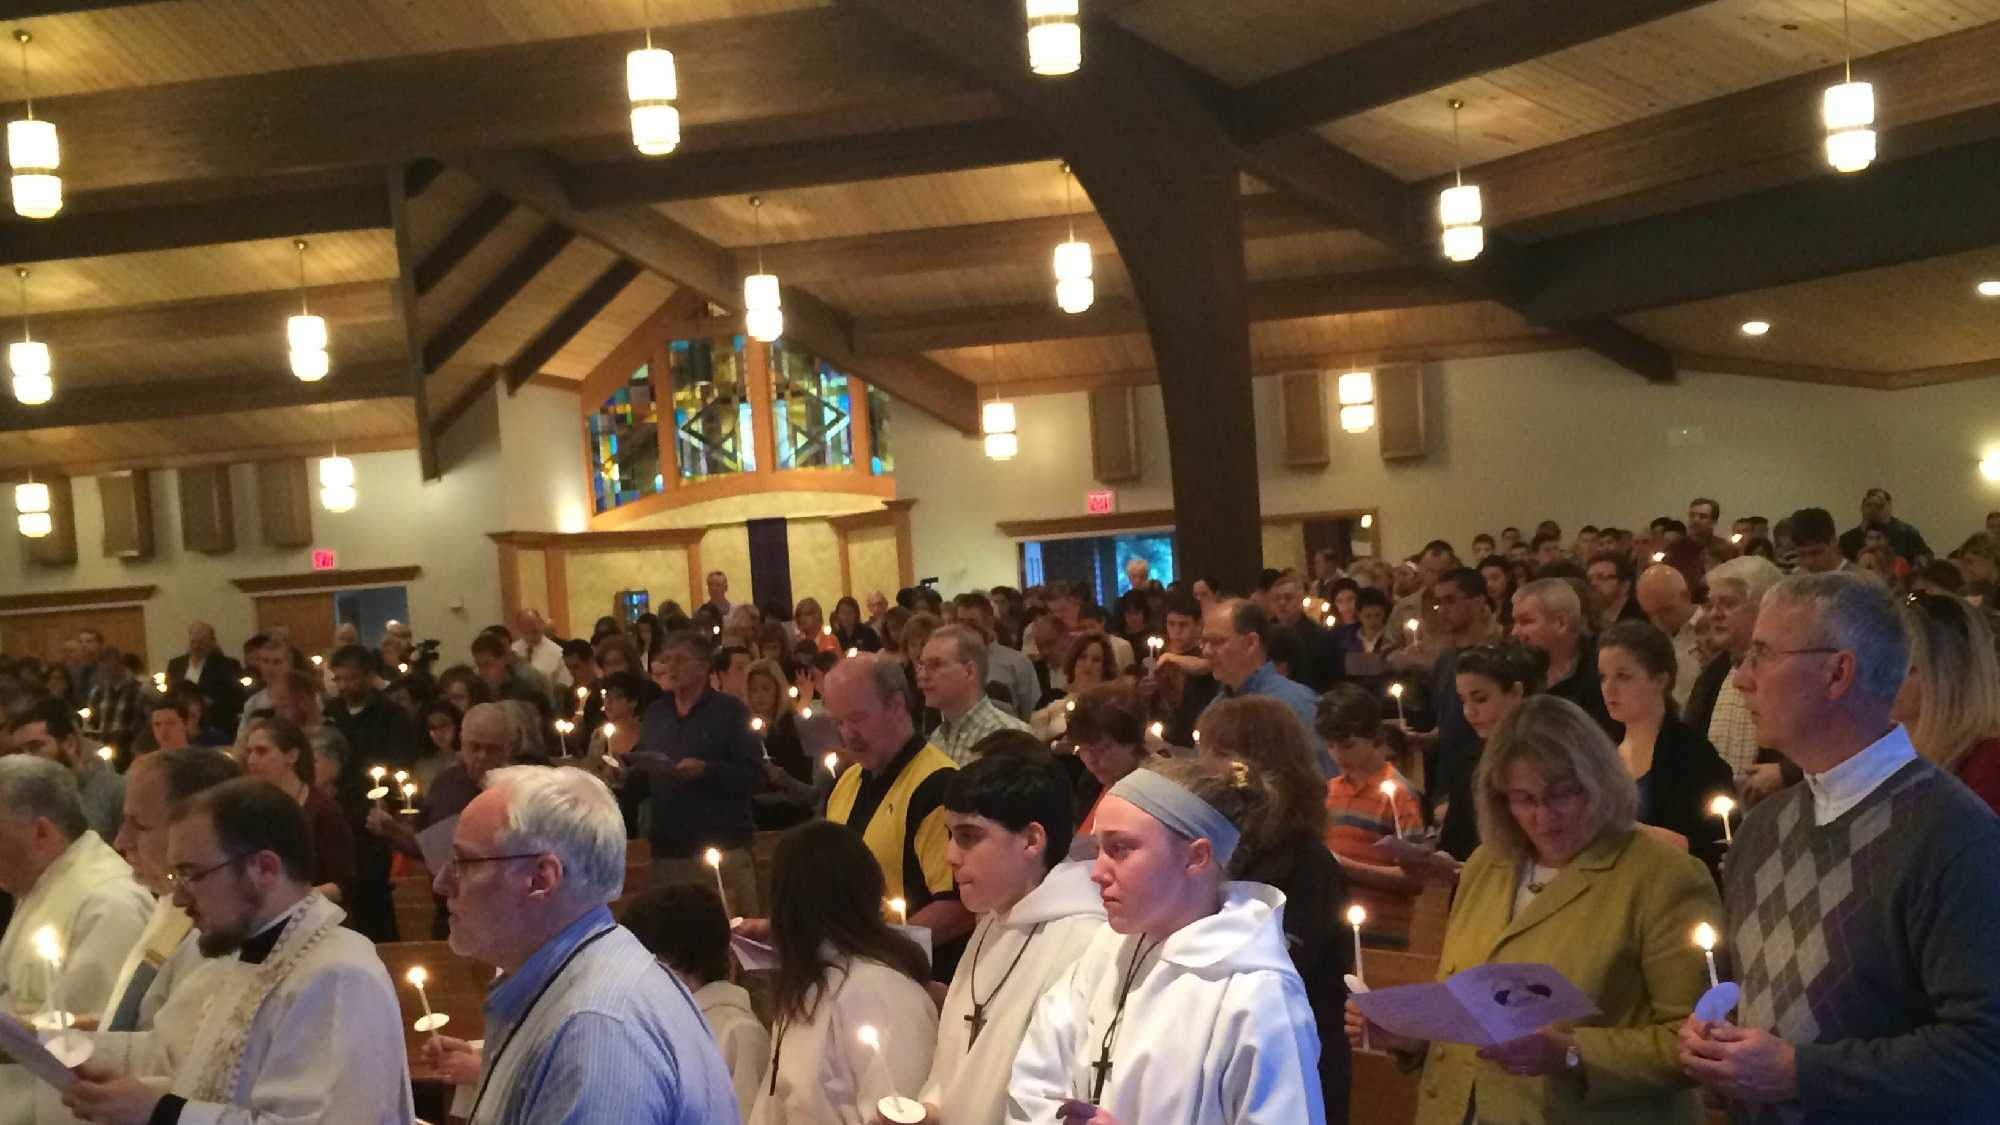 Hundreds gather at Mother of the Sorrows Church to pray for the victims of the Franklin Regional High School stabbing